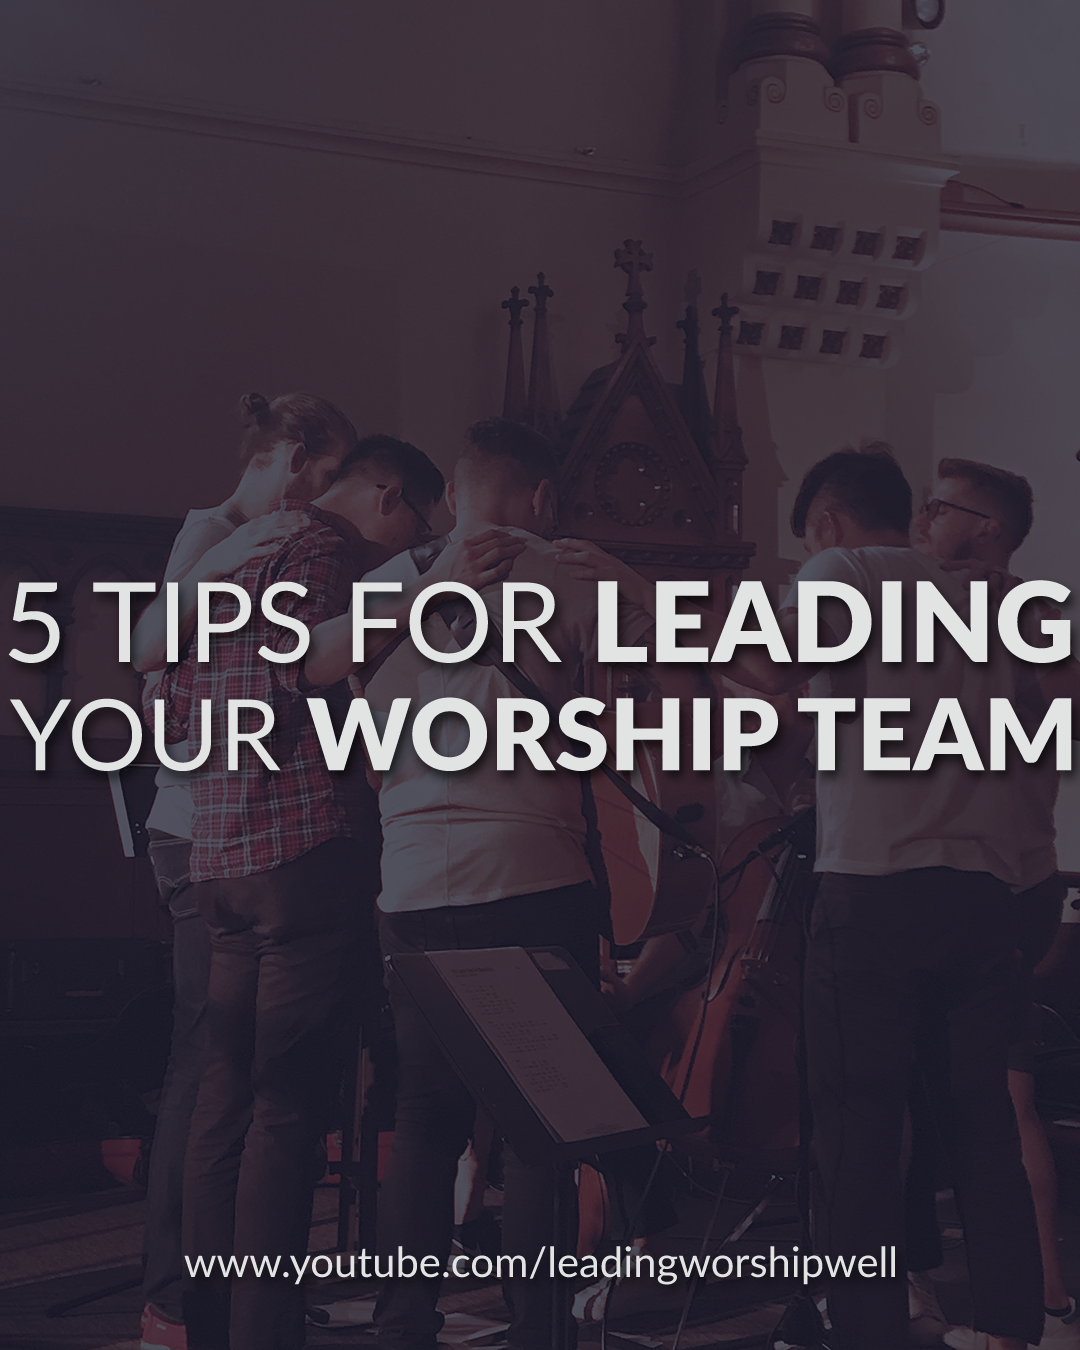 5 Tips For Leading Your Worship Team (Video)